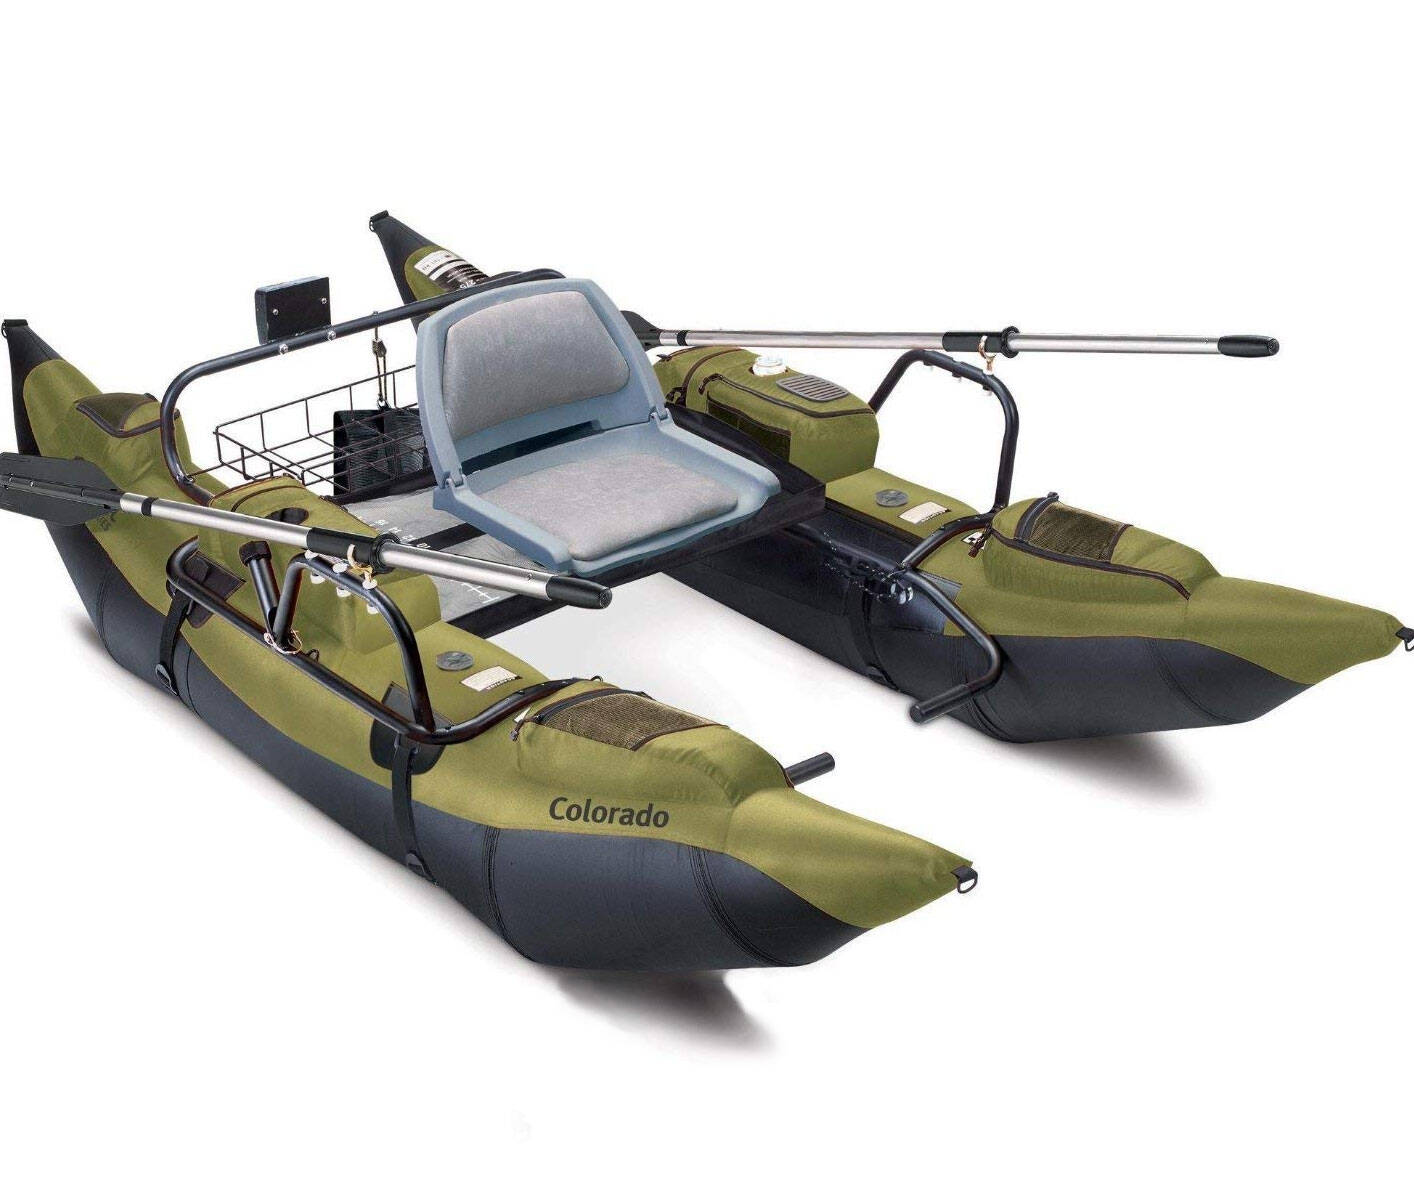 Inflatable Pontoon Boat with Motor Mount - http://coolthings.us